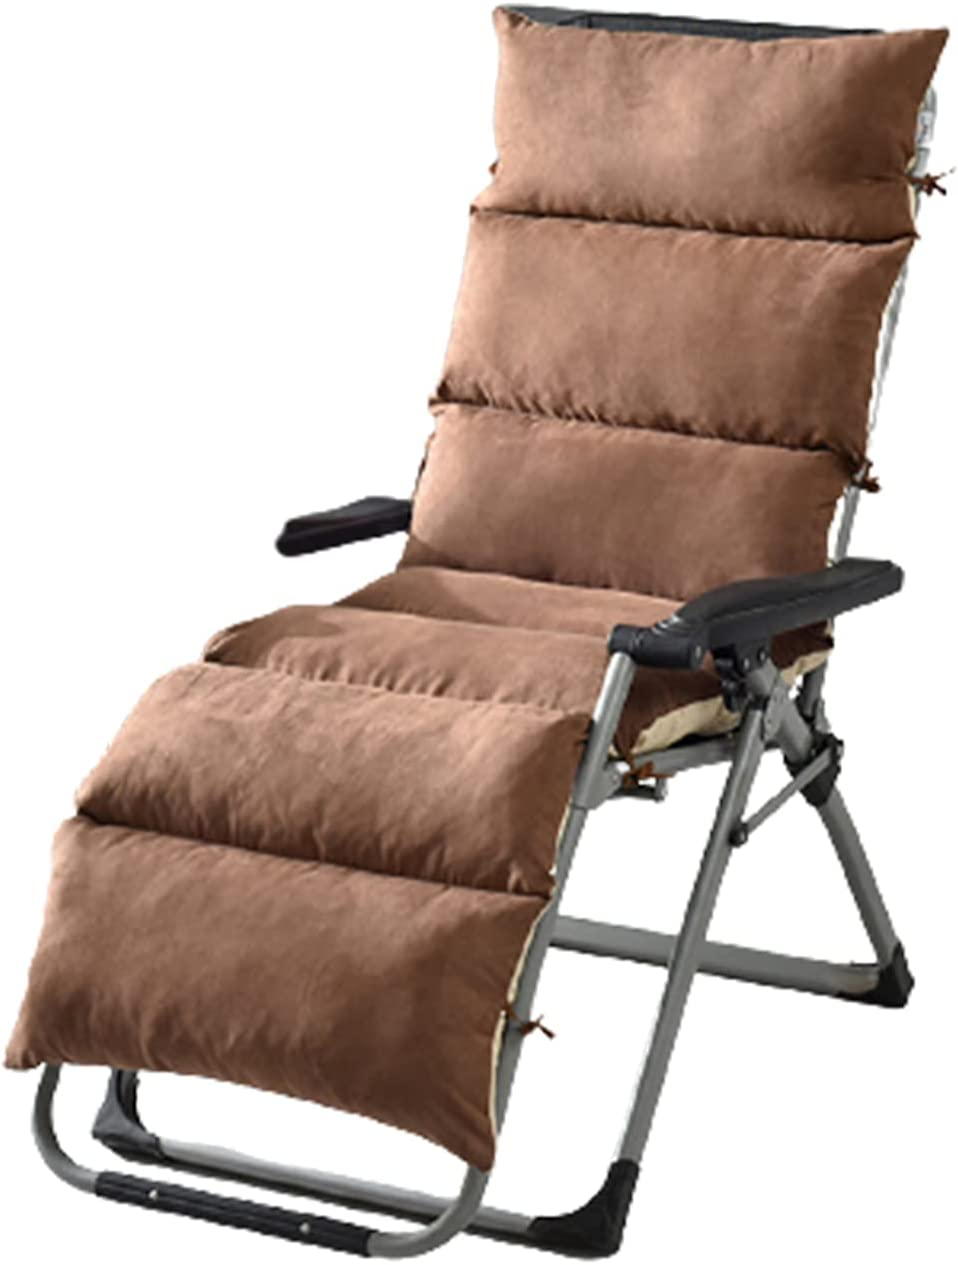 Detachable And Minneapolis Soldering Mall Washable Wicker Chair Long Foldable An Backrest